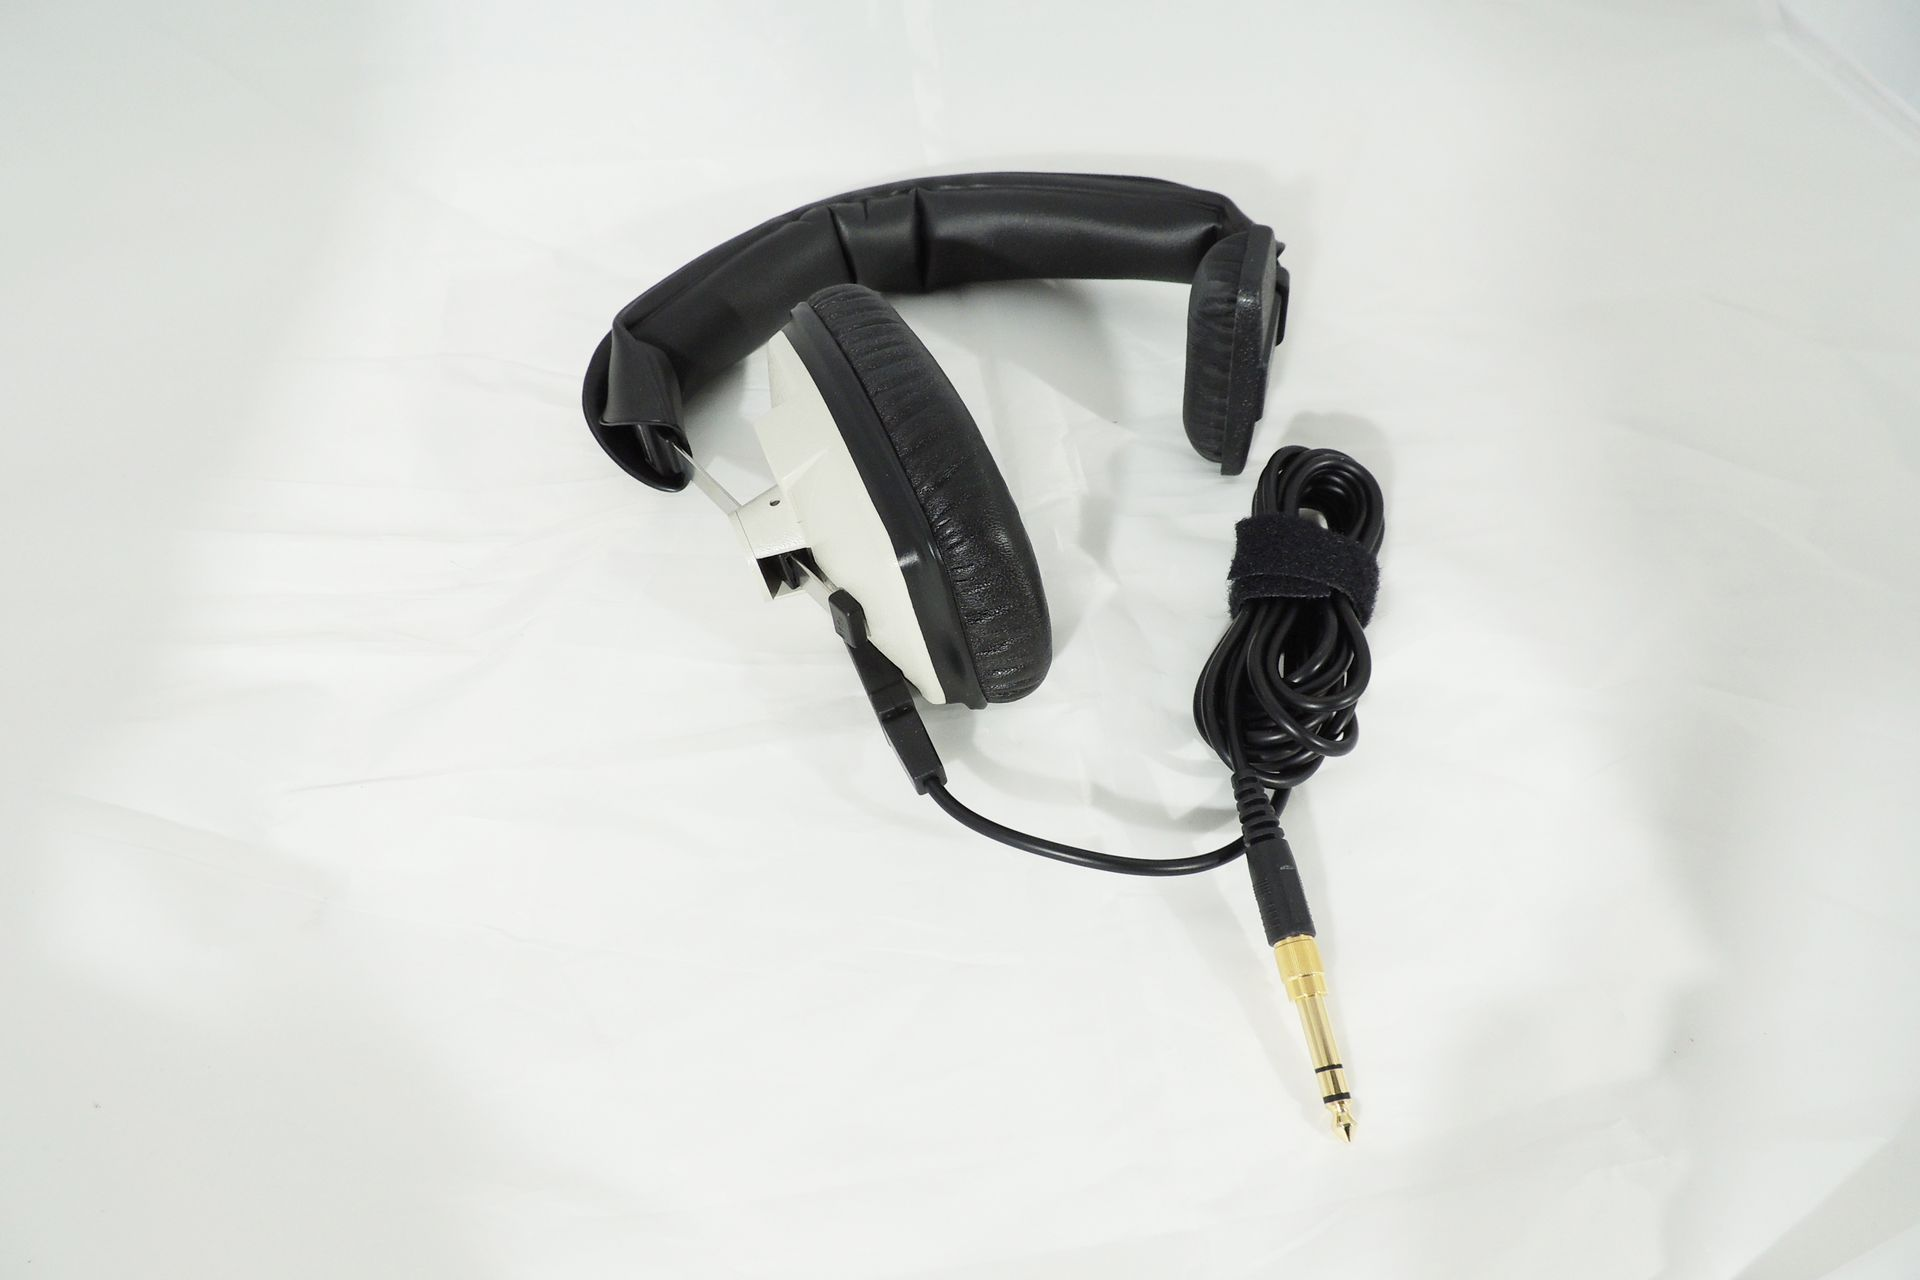 BEYERDYNAMIC DT-102 SINGLE-EAR HEADPHONES (400 OHM)